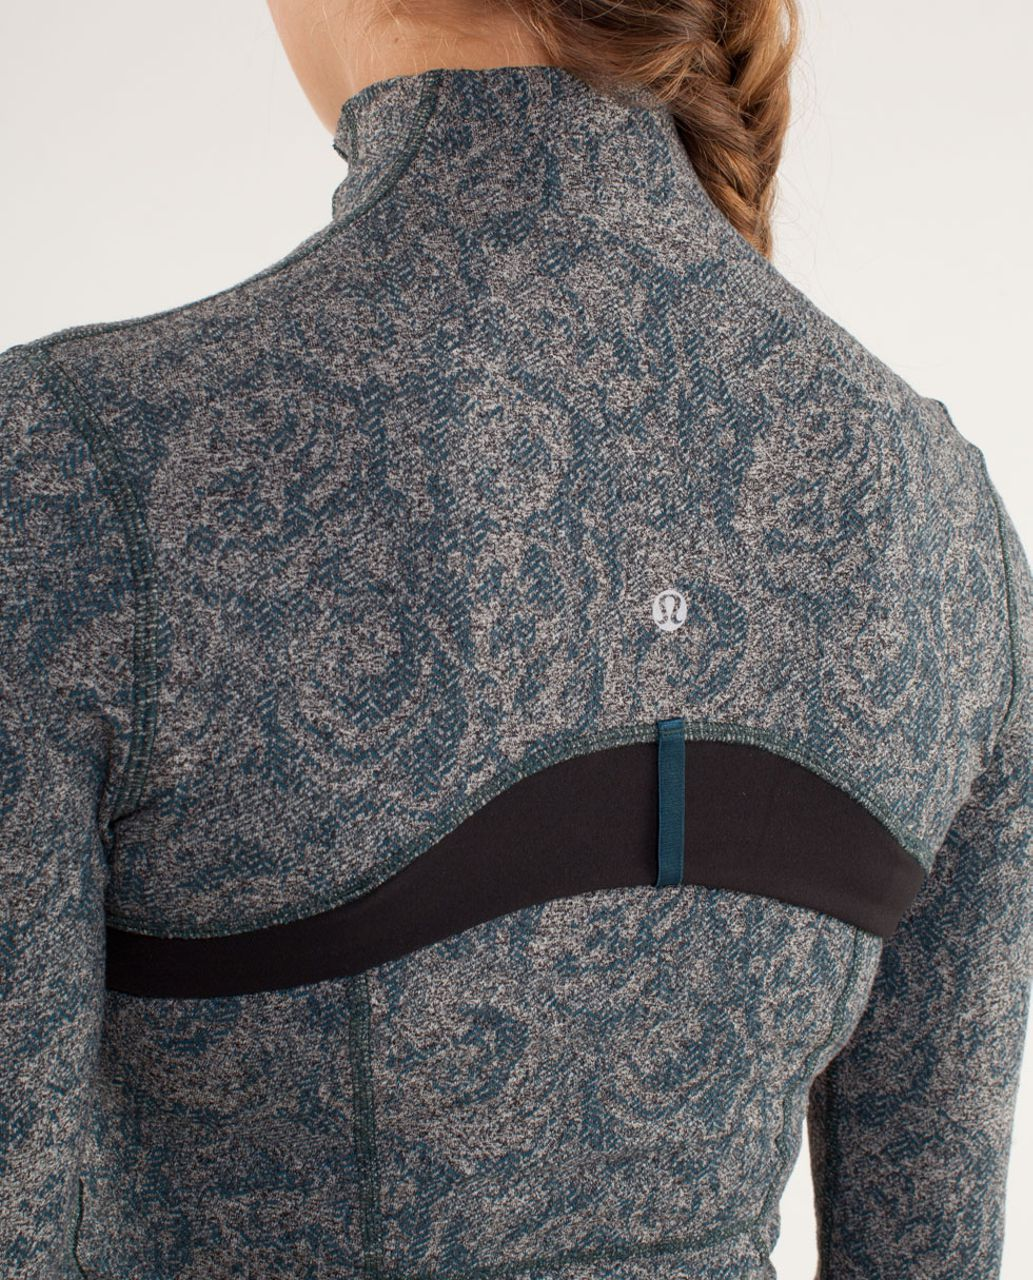 Lululemon Define Jacket *Brushed - Rose Herringbone Alberta Lake / Black / Micro Macro Alberta Lake Heathered Black